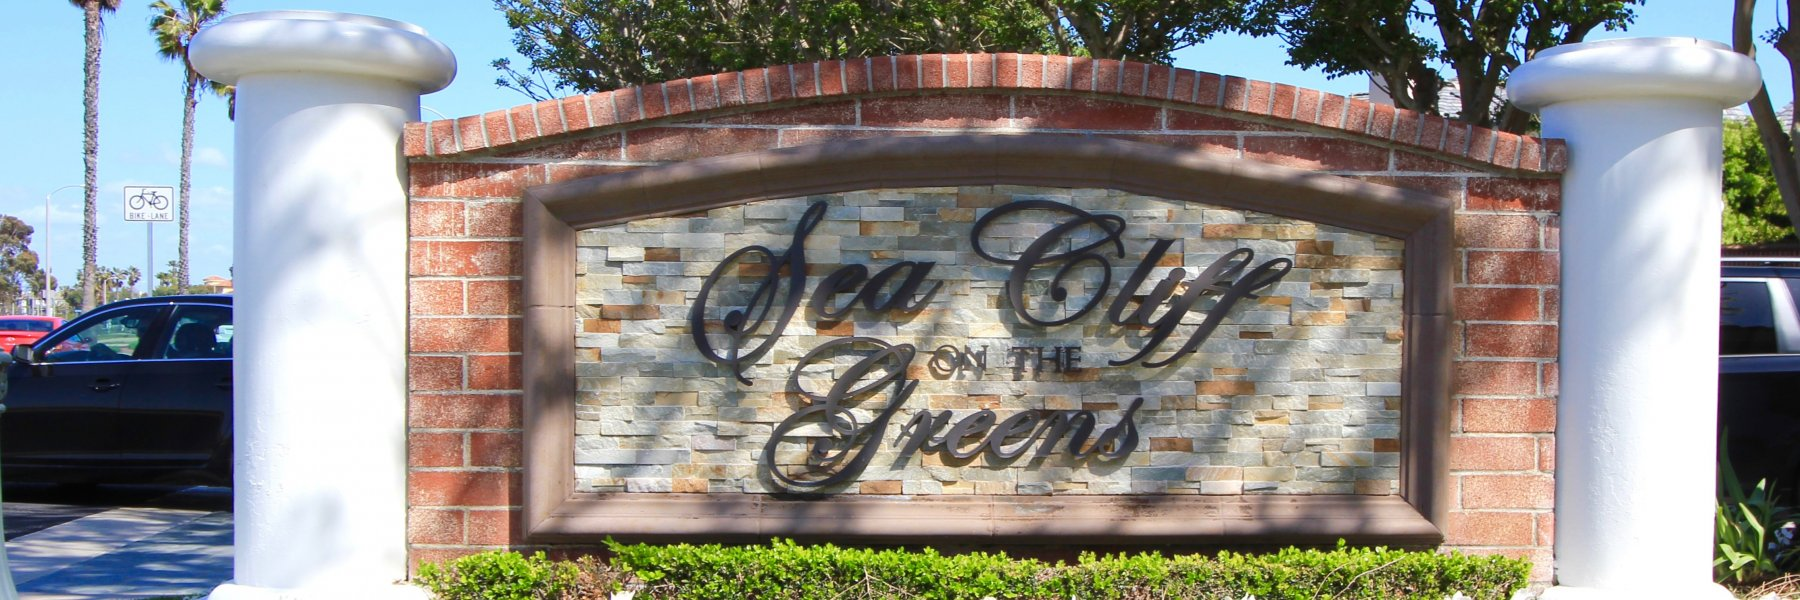 Seacliff on the Greens is a community of homes in Huntington Beach California